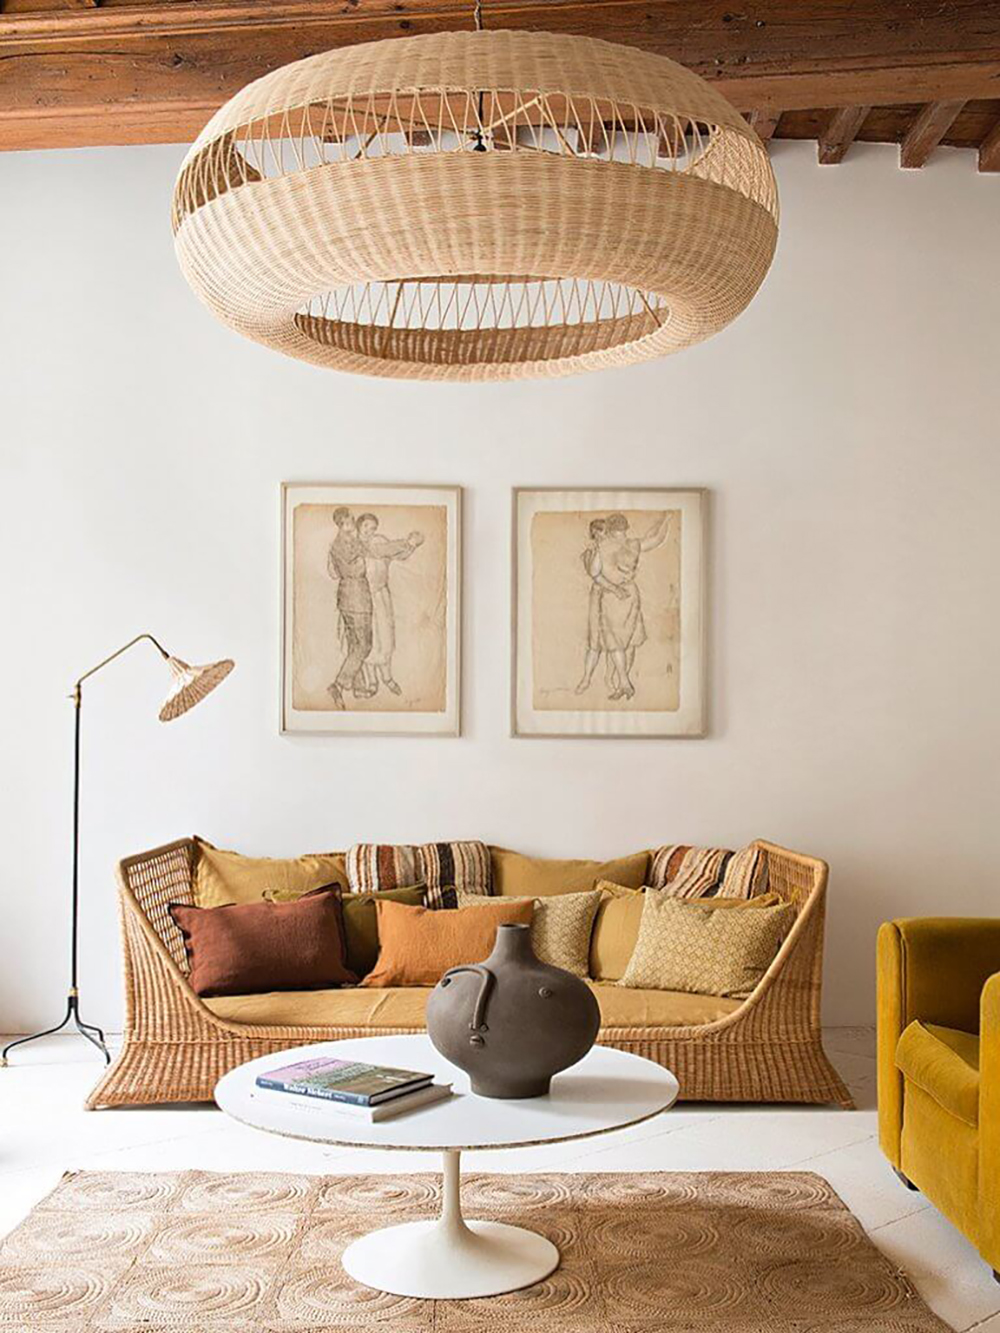 Wicker pendant light by Atelier Vime for natural look - Transform your home into a tropical paradise | Aliz's Wonderland